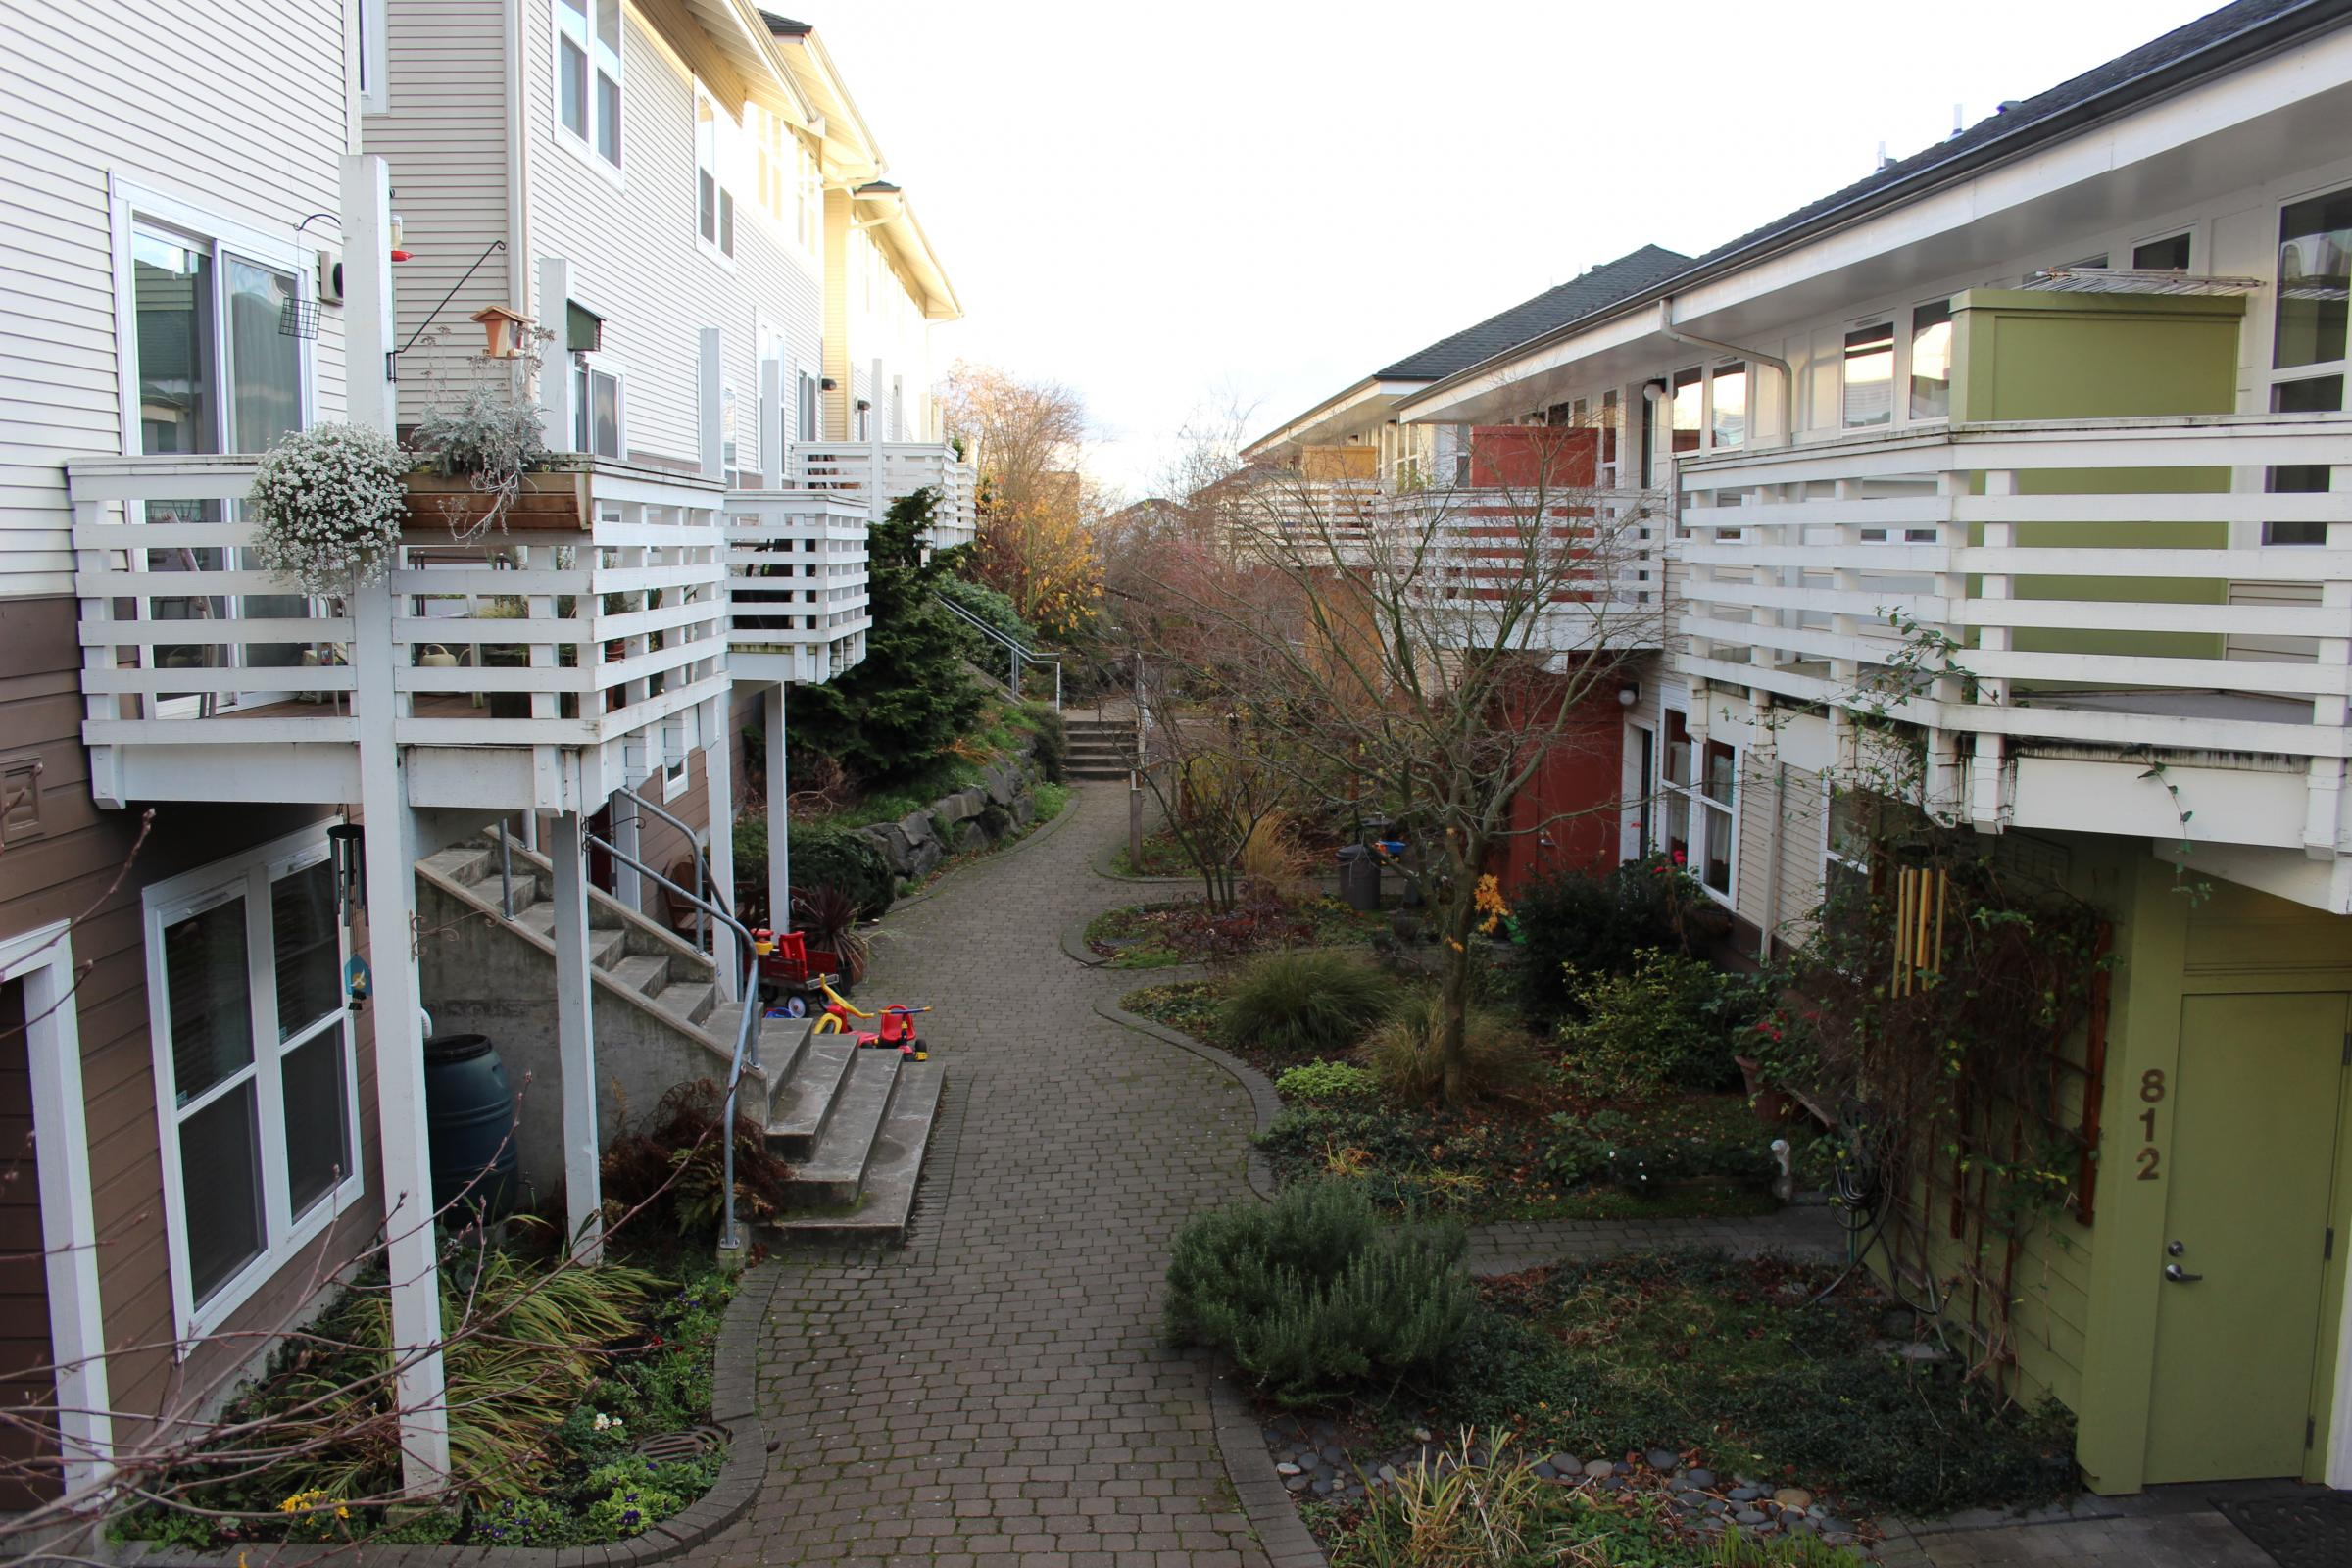 a peek inside seattle s remaining communes kuow news and information town houses at jackson place cohousing cohousing comes out of a scandinavian housing movement to bring people together but also afford them private space